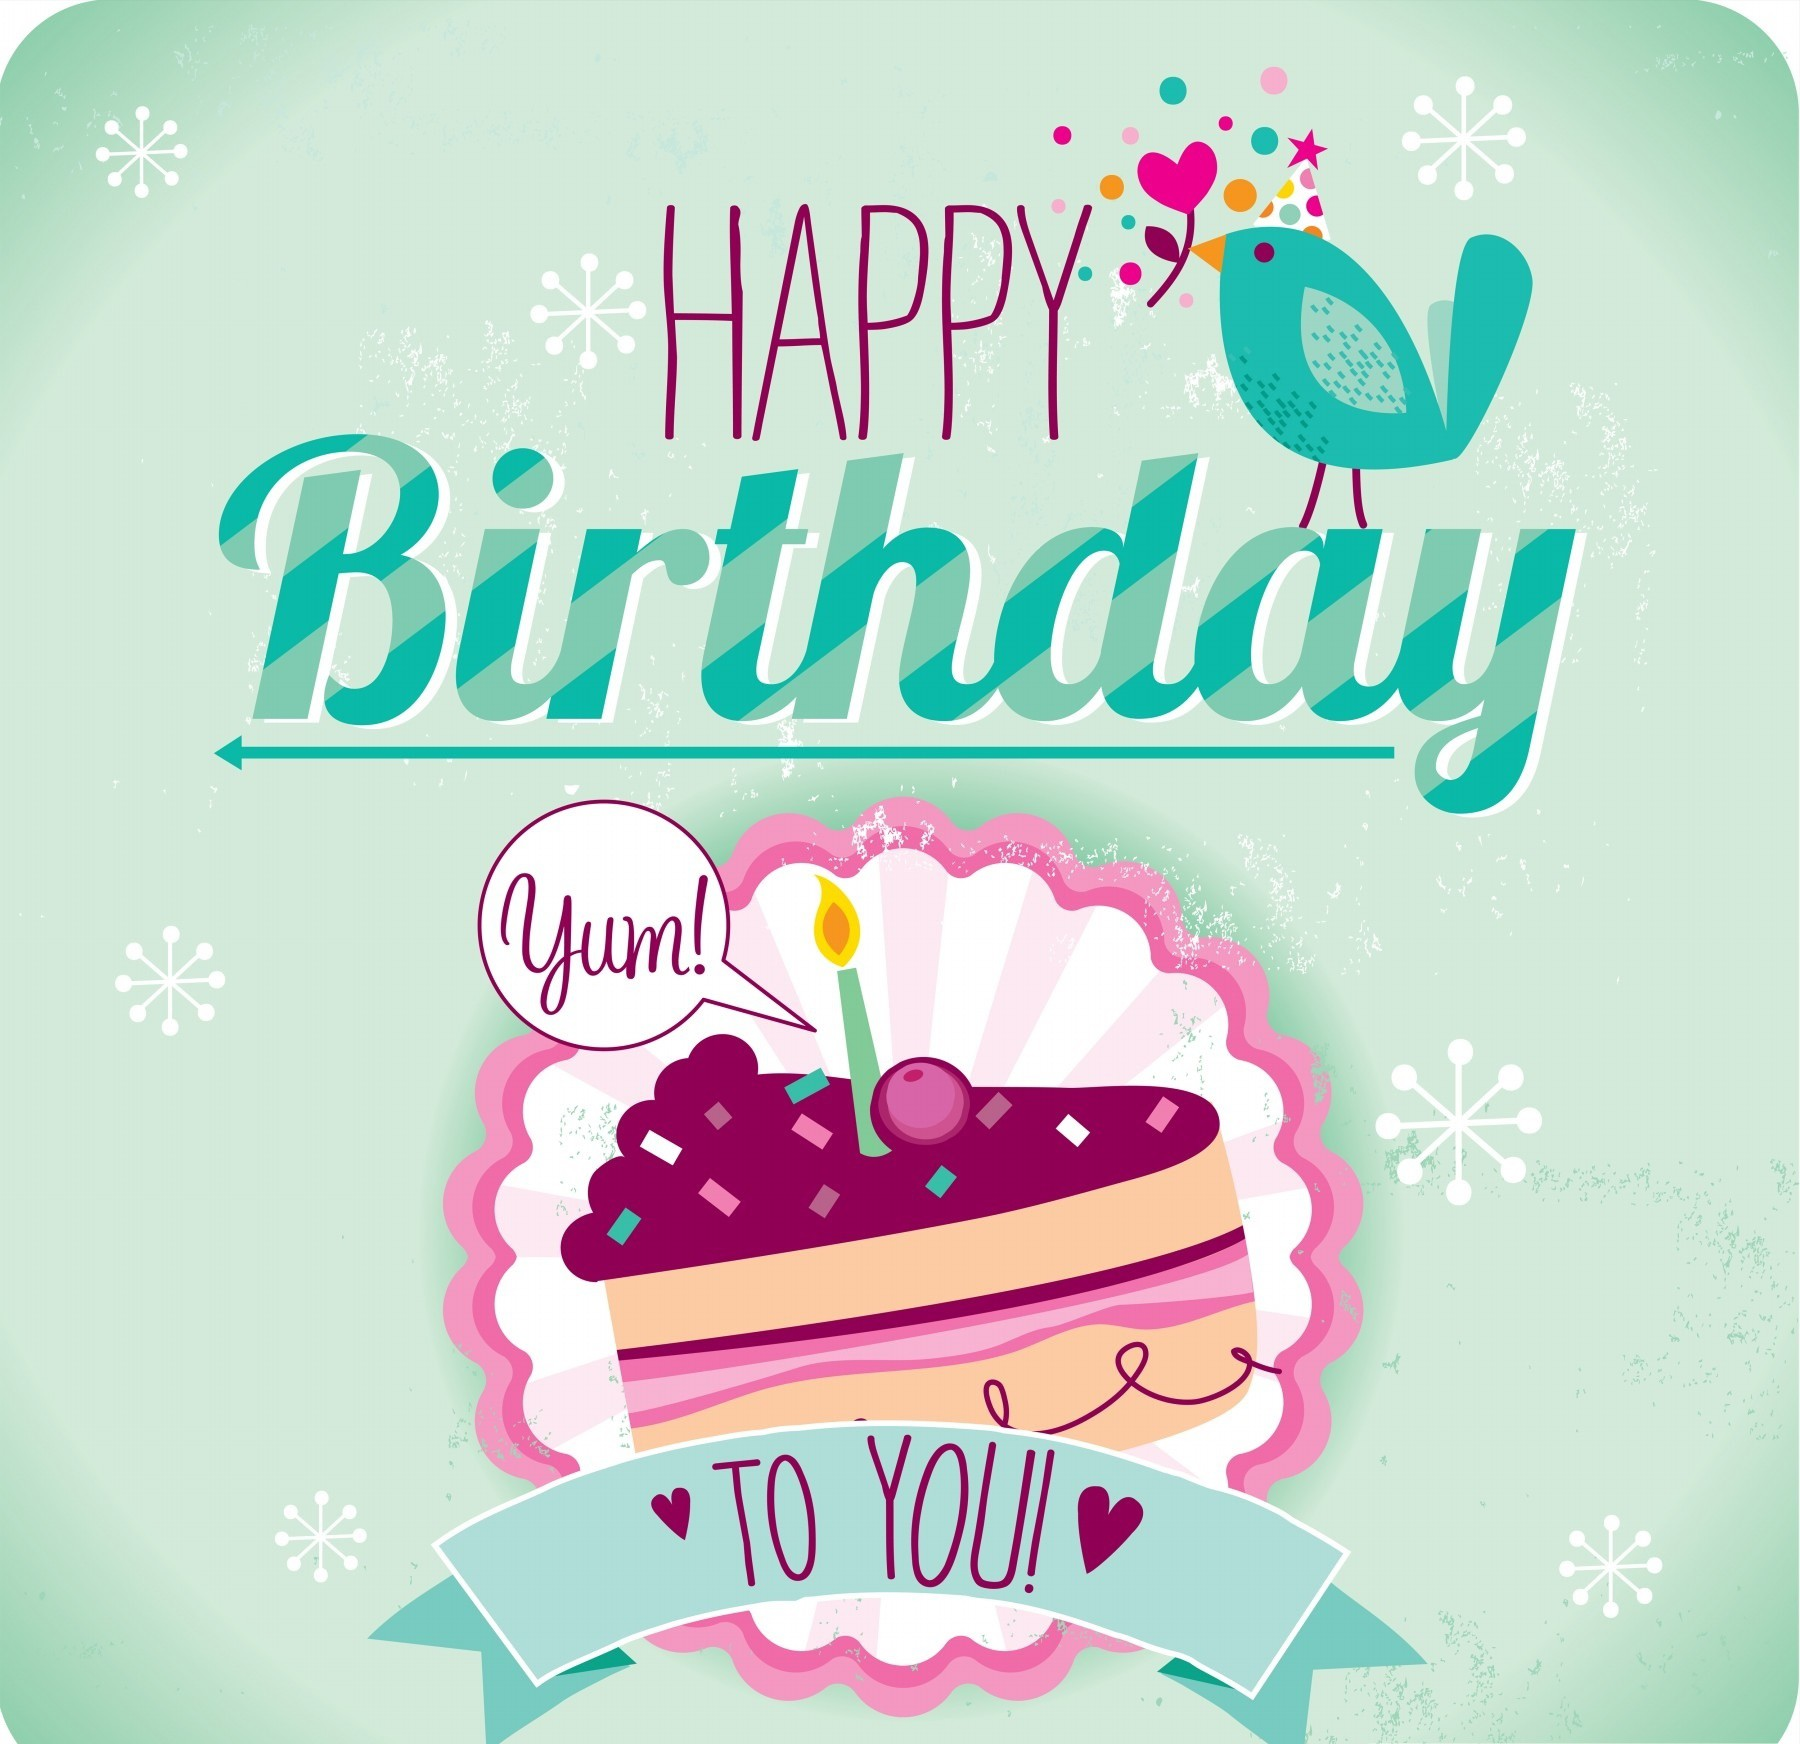 birthday wishes images hd ; Birthday-wishes-Card